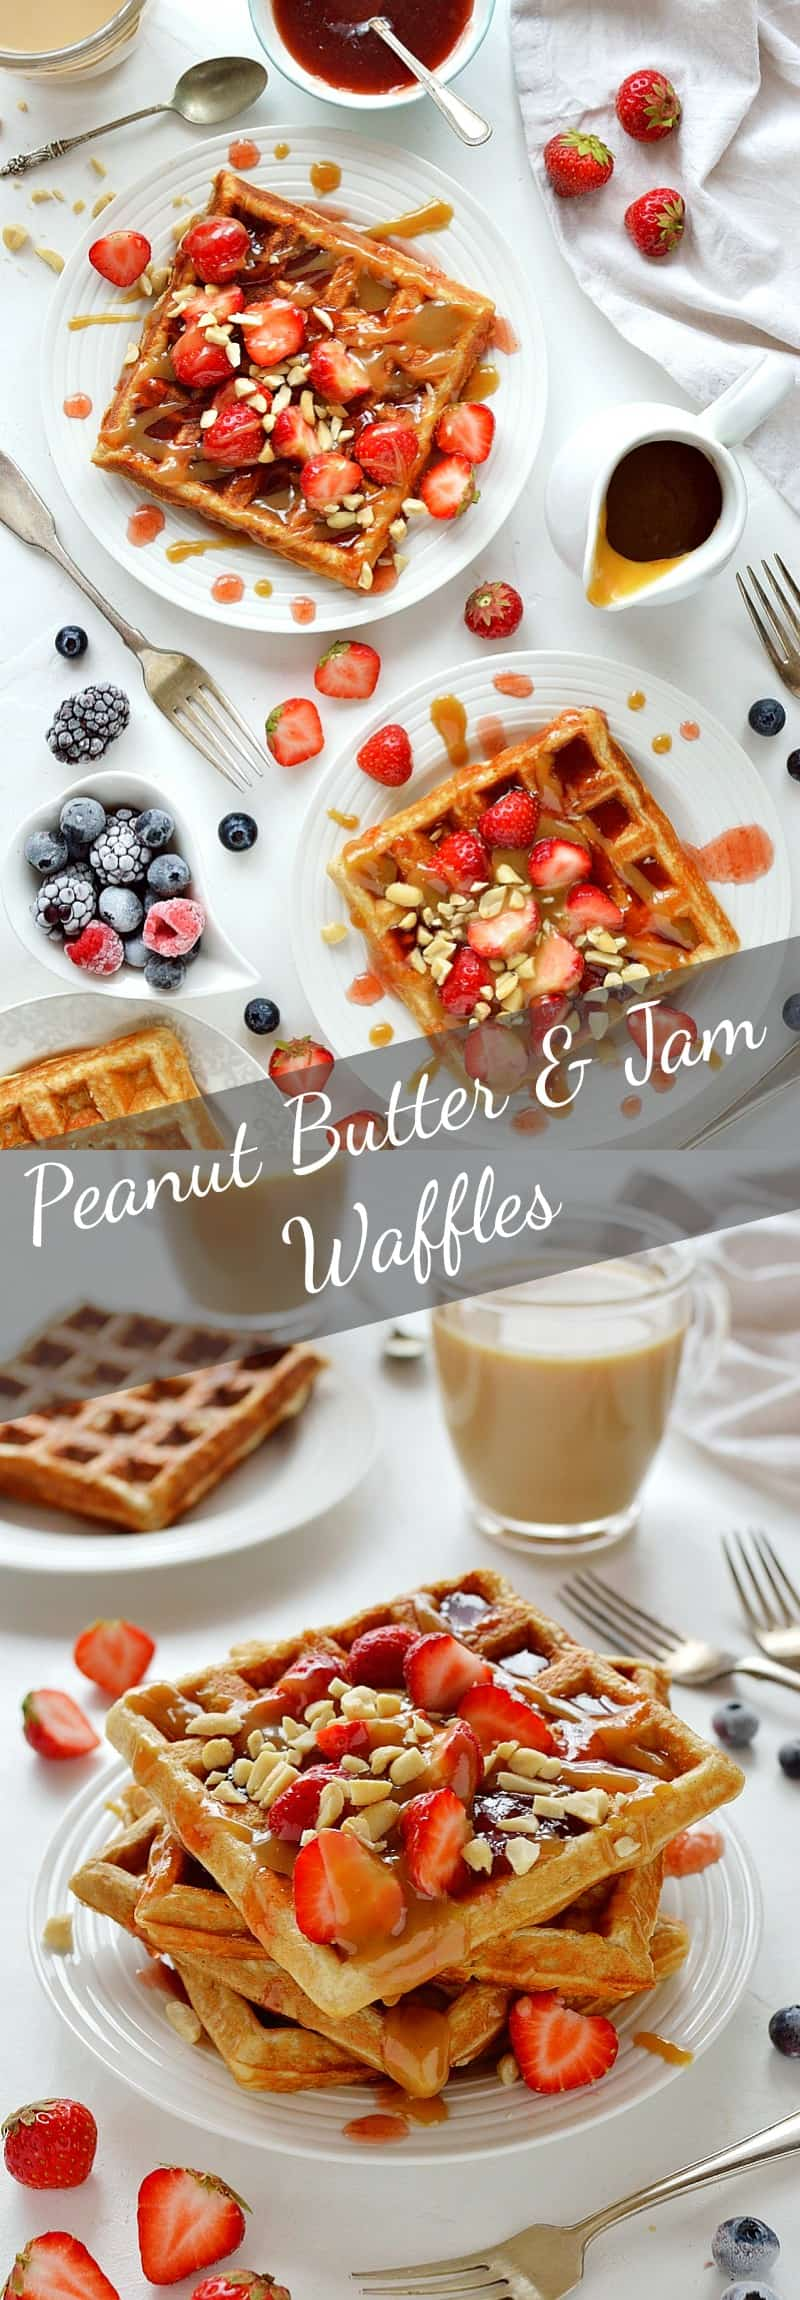 Peanut butter and jelly waffles - the classic PB&J combination in tasty waffle form! #breakfast #waffles #brunch